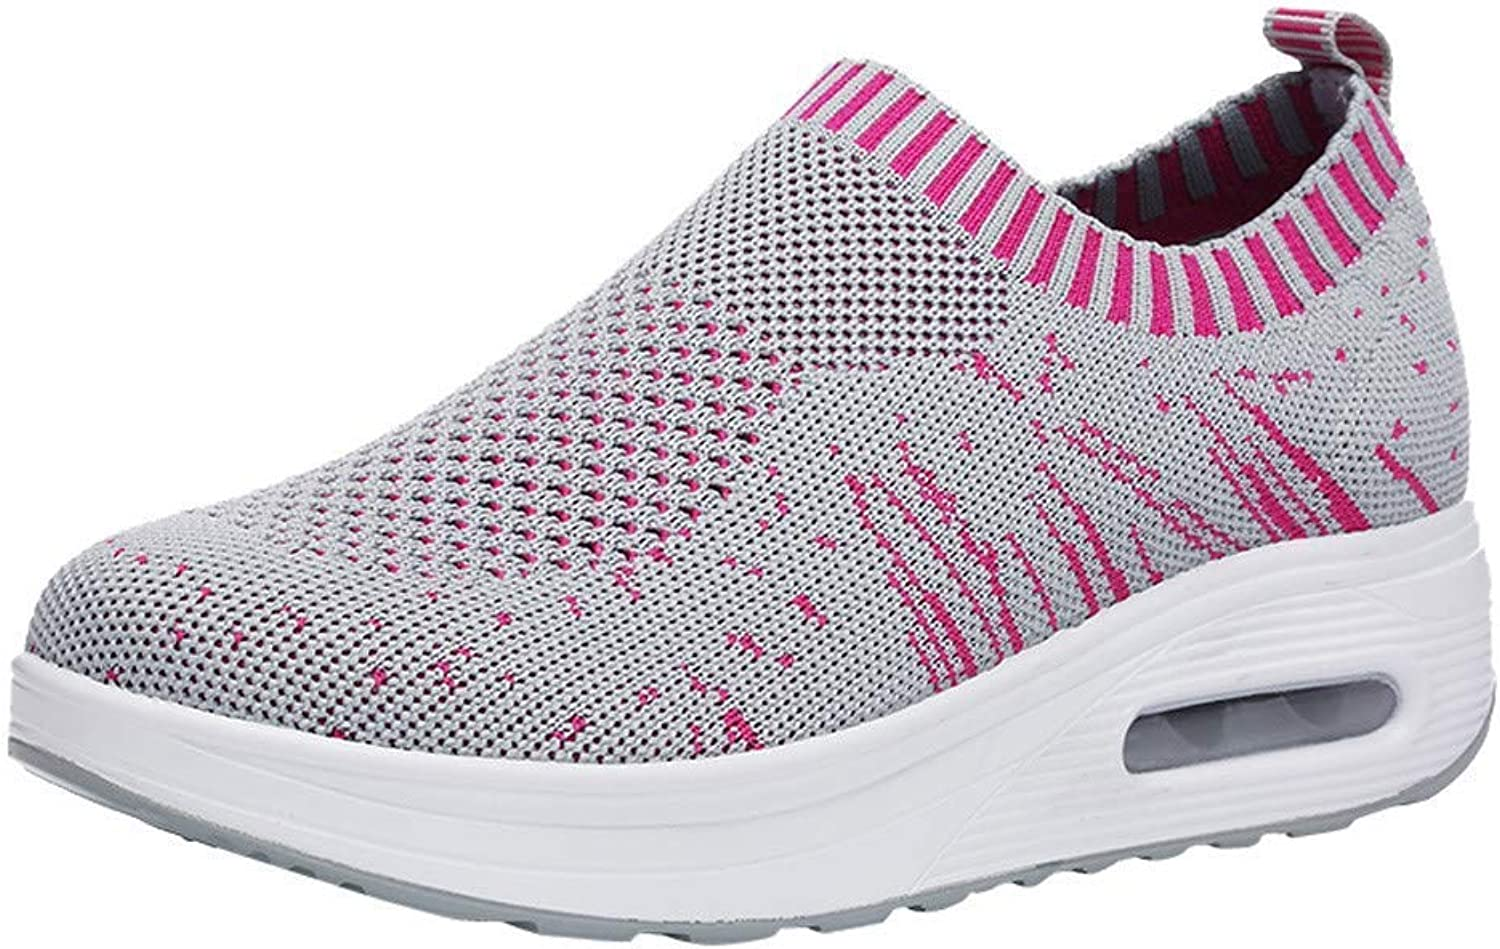 JaHGDU Women Outdoor Air Cushion shoes Mesh Casual Sport shoes Thick Soled Sneakers Fashion Cosy Wild Casual Quality Super Elegant Leisure for Womens